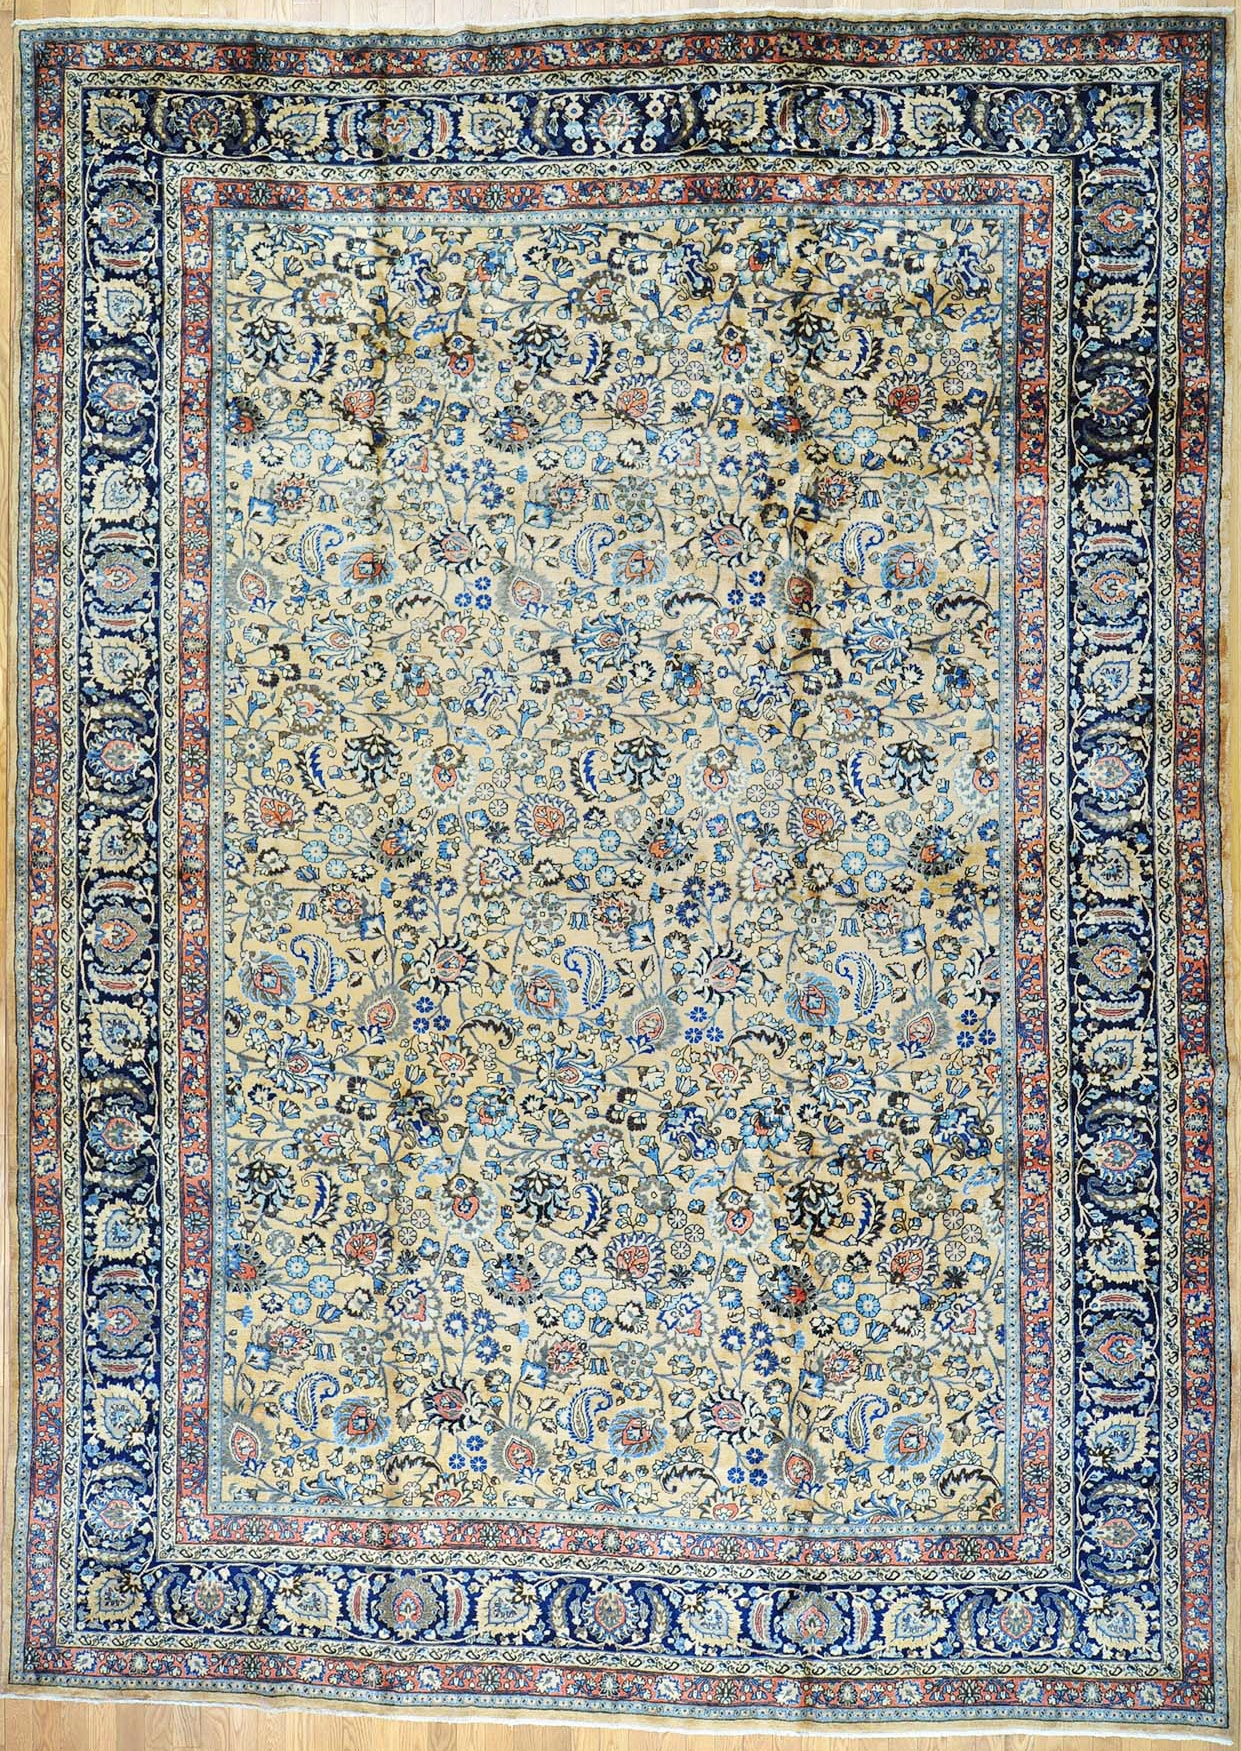 Buy Authentic Hand Knotted Persian Rugs 5000 And Up From Oldcarpet Within Green Persian Rugs (Image 8 of 15)